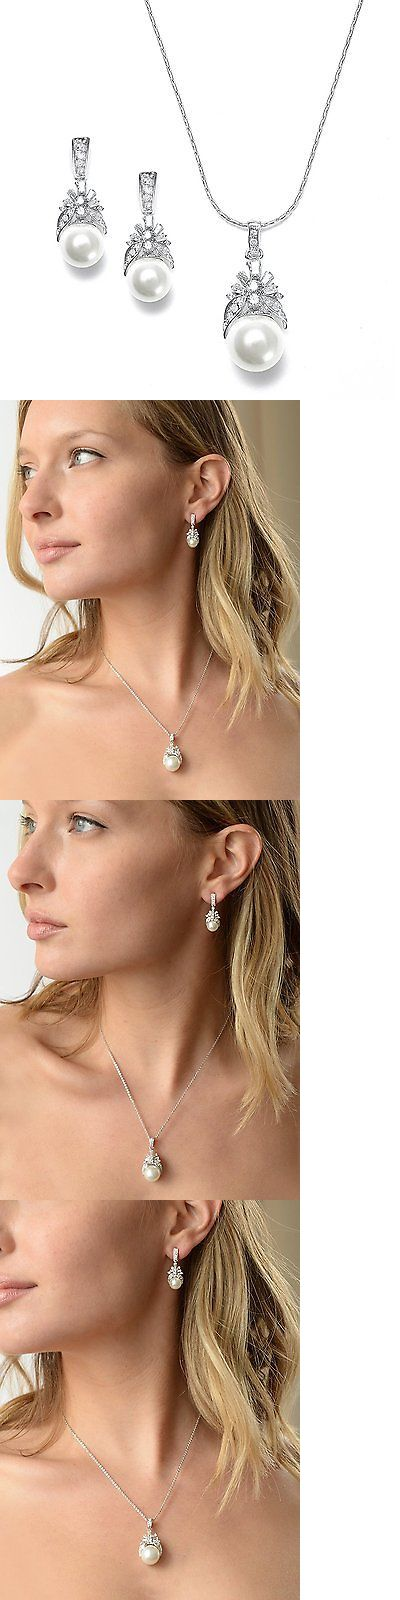 Bridal Jewelry 163552: Mariell Light Cream Pearl Drop Bridal Necklace And Earrings Set With Vintage Cz - -> BUY IT NOW ONLY: $39.03 on eBay!